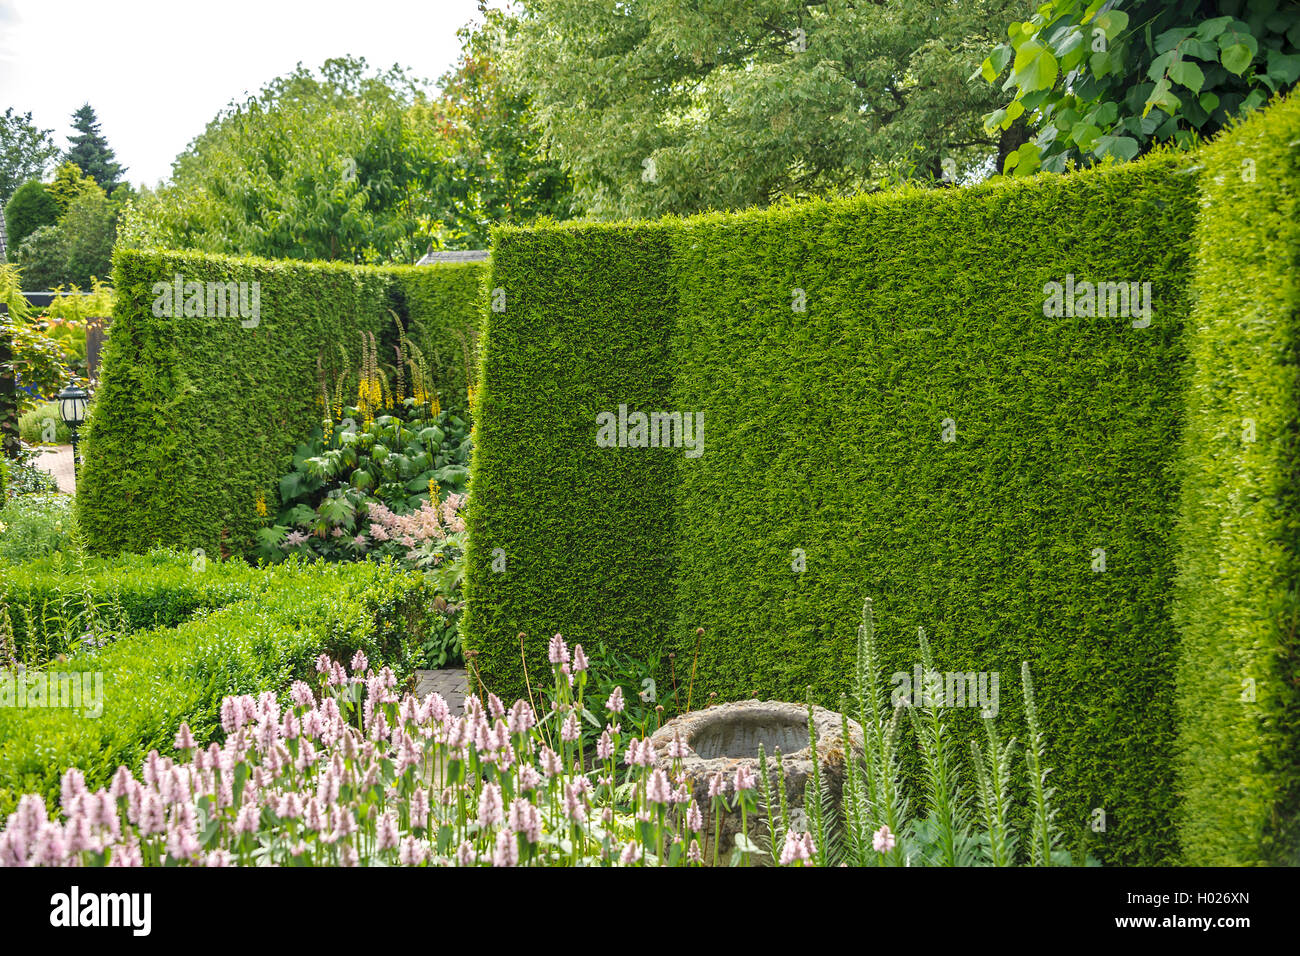 thuja hecke stock photos thuja hecke stock images alamy. Black Bedroom Furniture Sets. Home Design Ideas